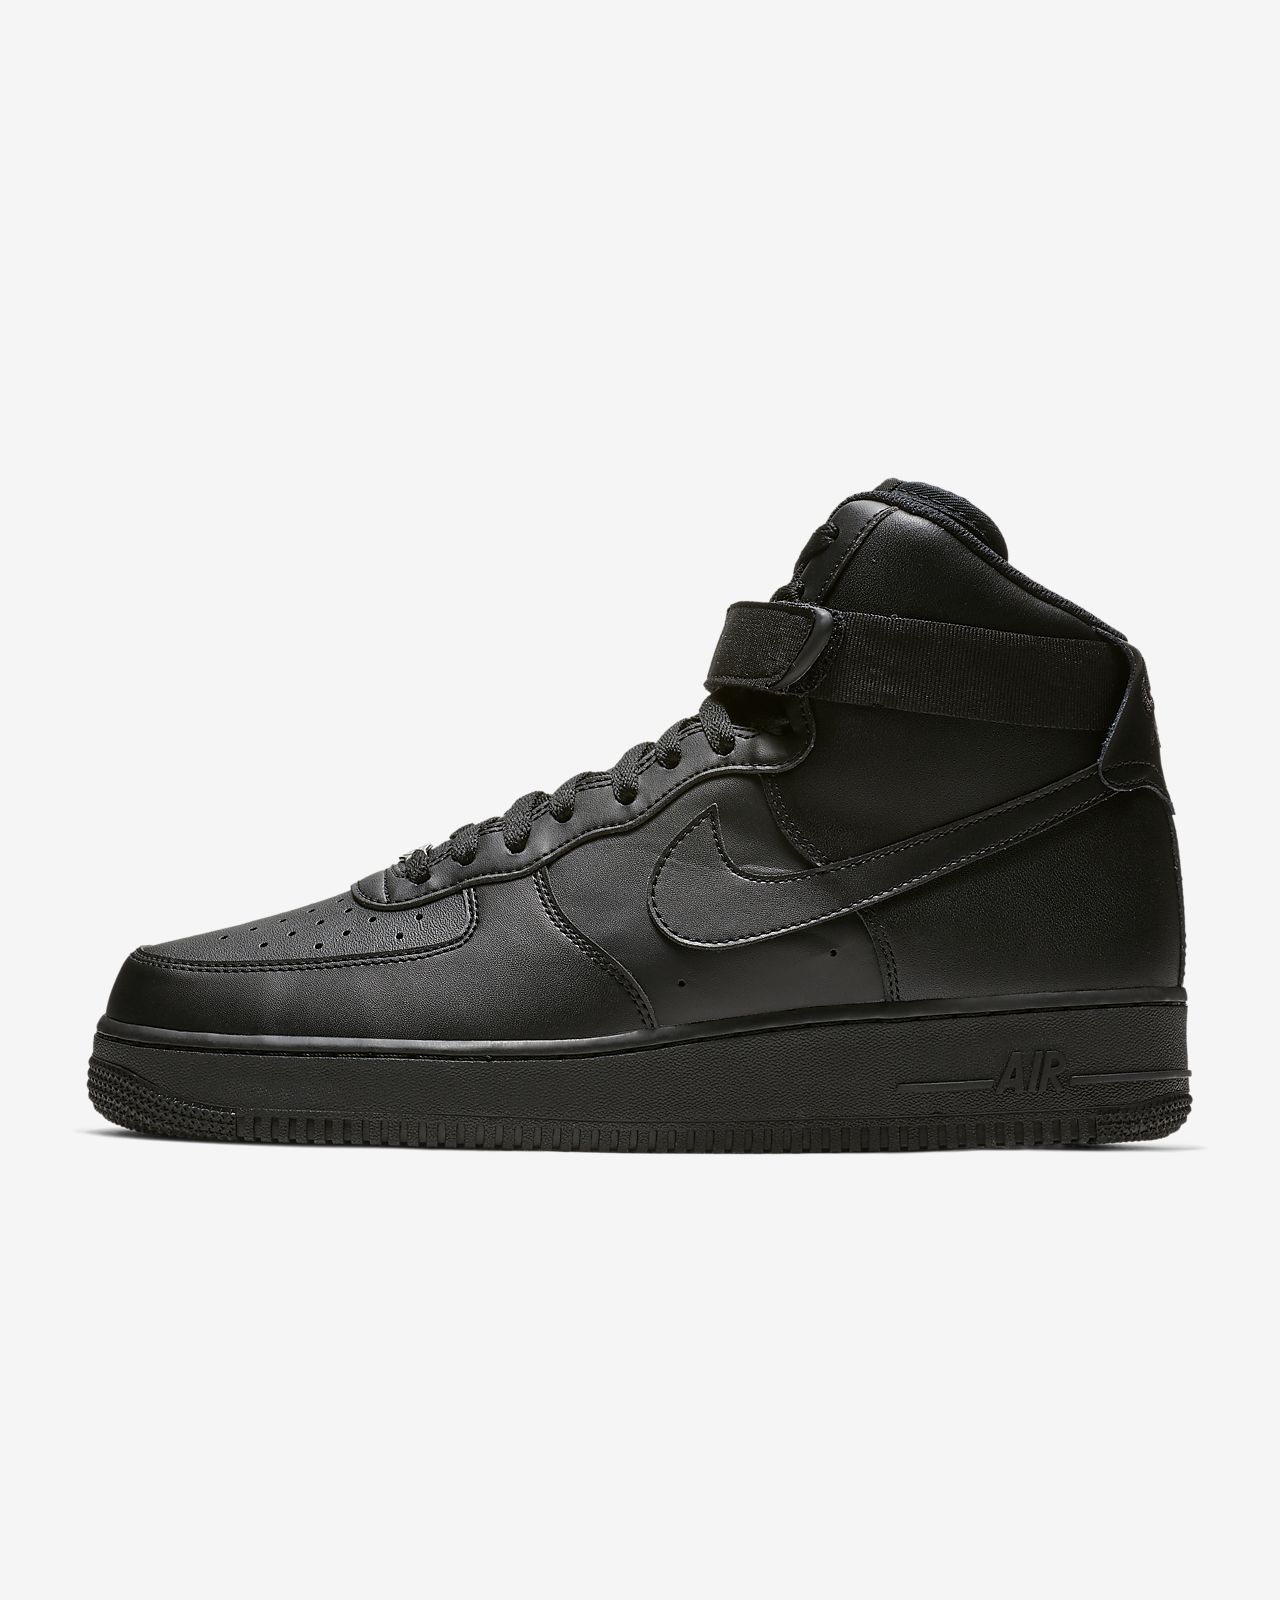 82434d4d58e Nike Air Force 1 High 07 Men s Shoe. Nike.com